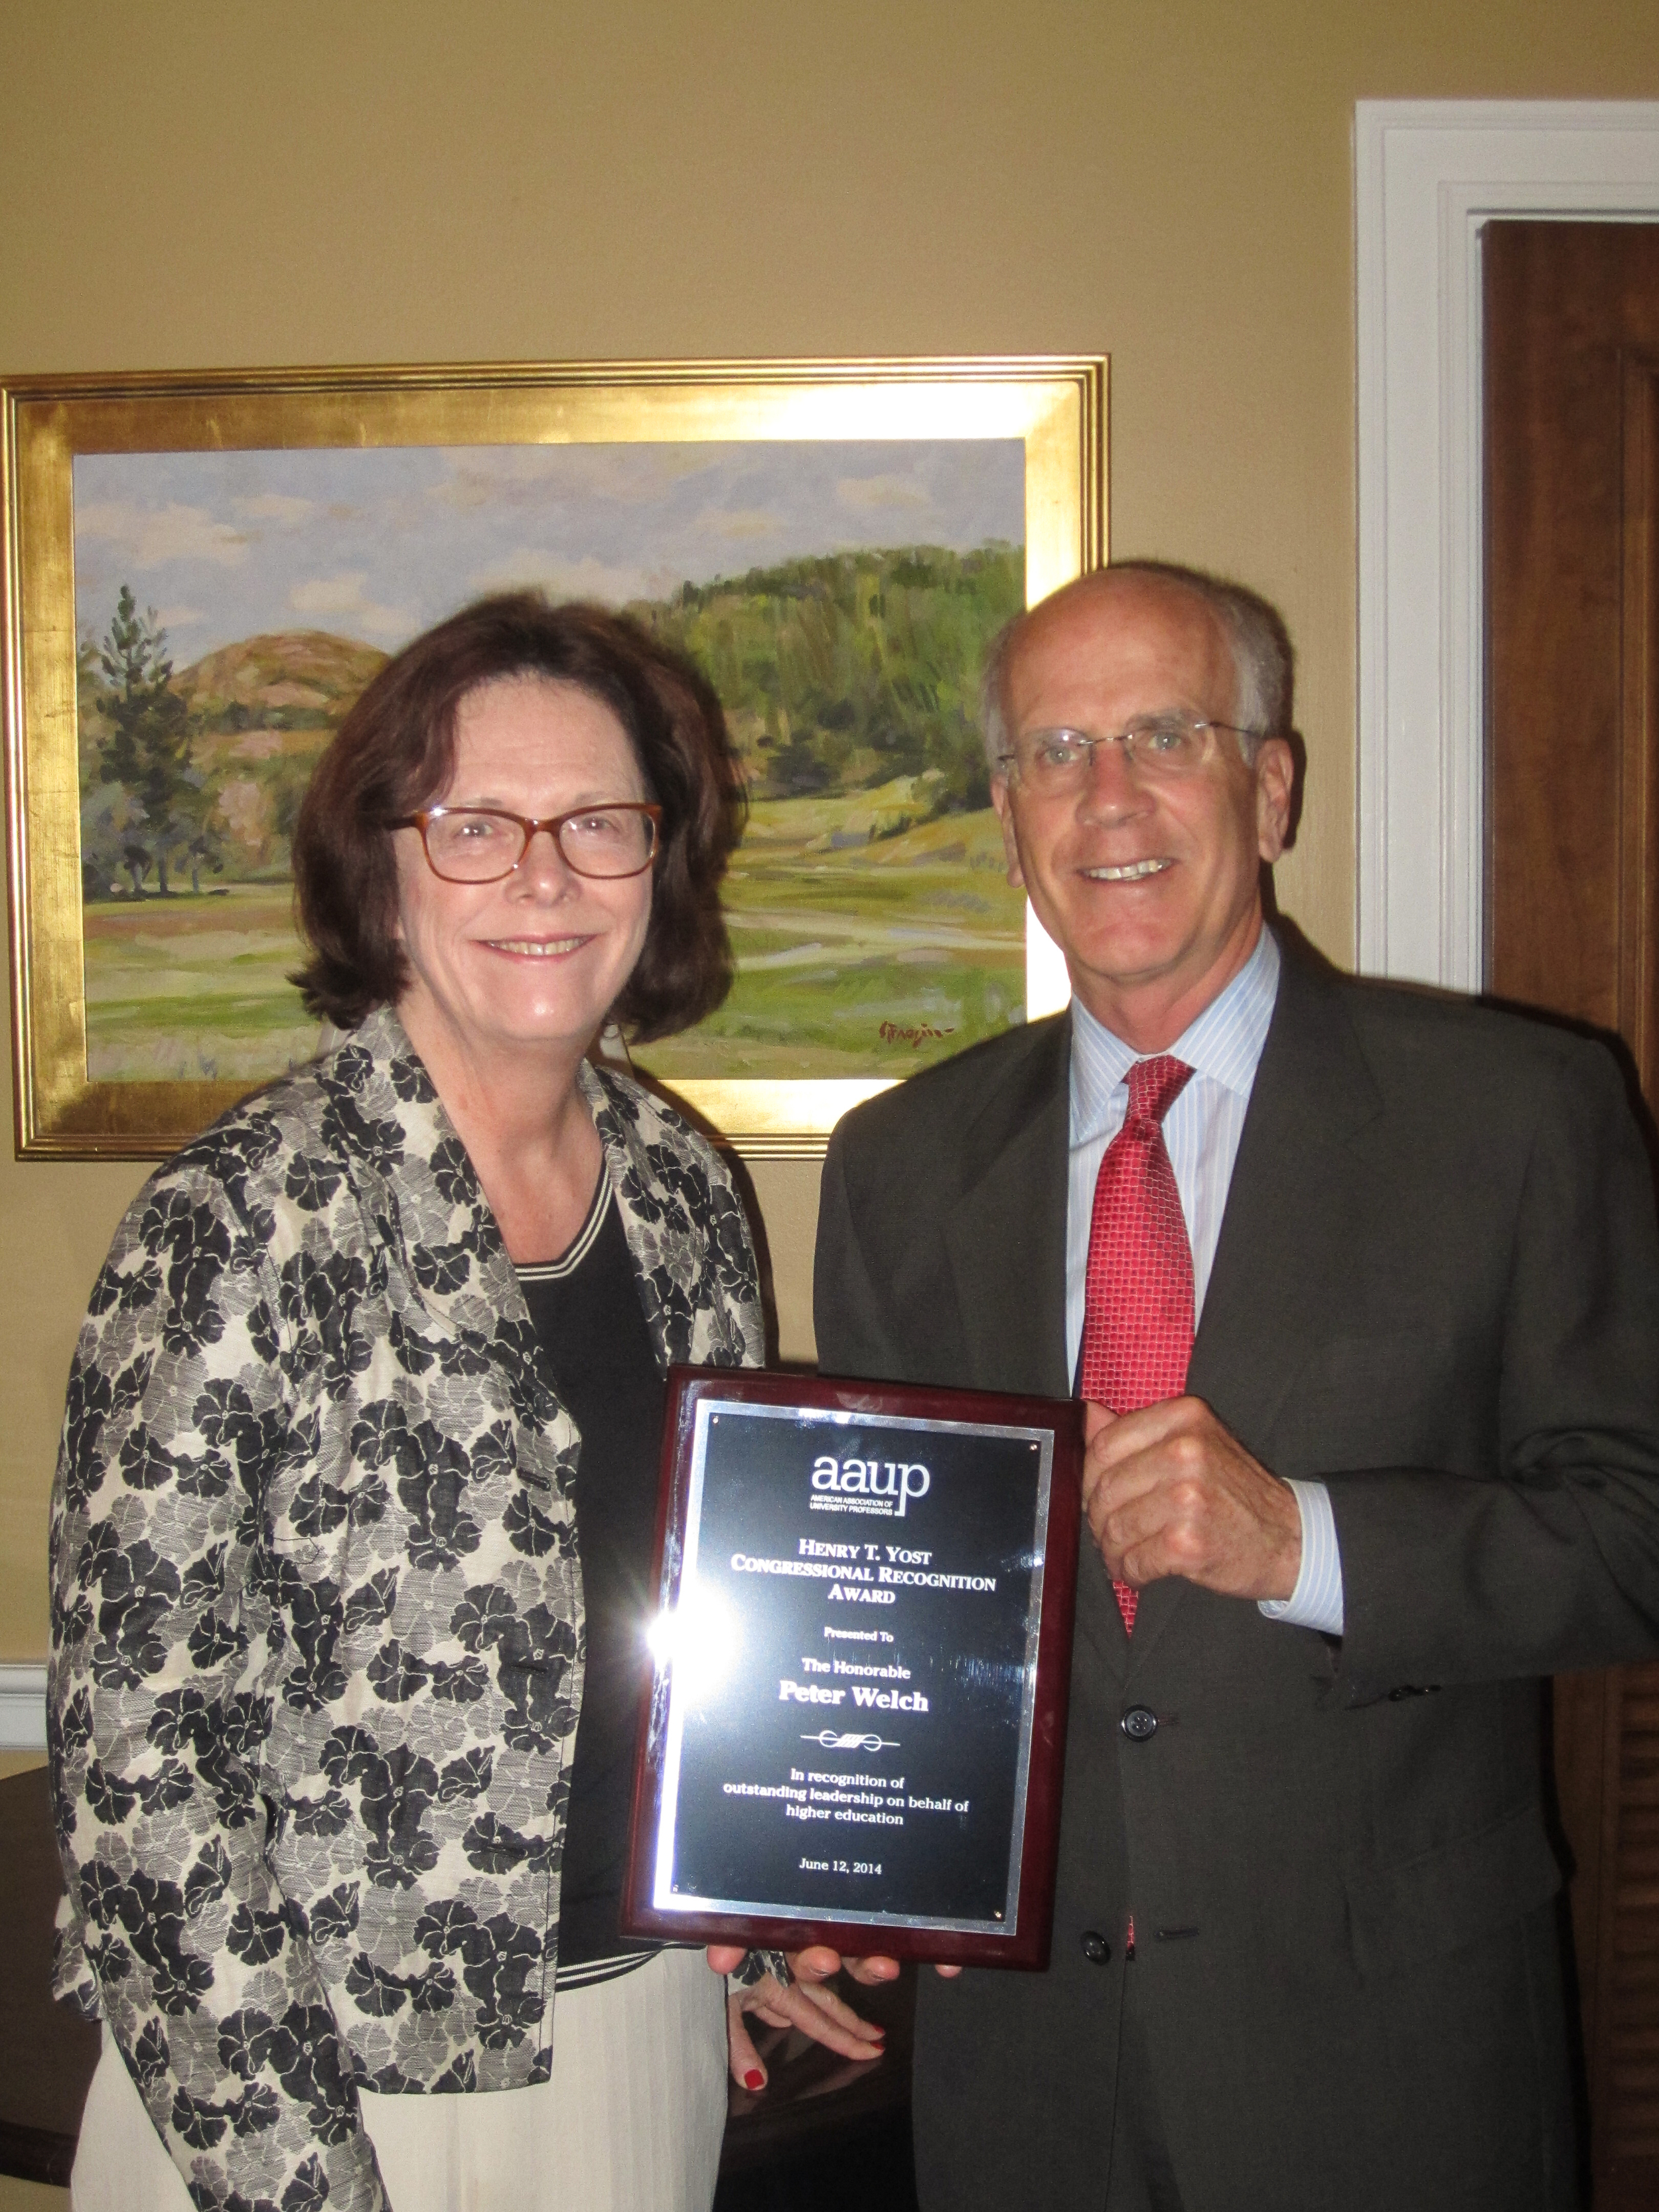 UA President Denise Youngblood presents the AAUP's Henry T. Yost Award to Congressman Peter Welch (D-VT)